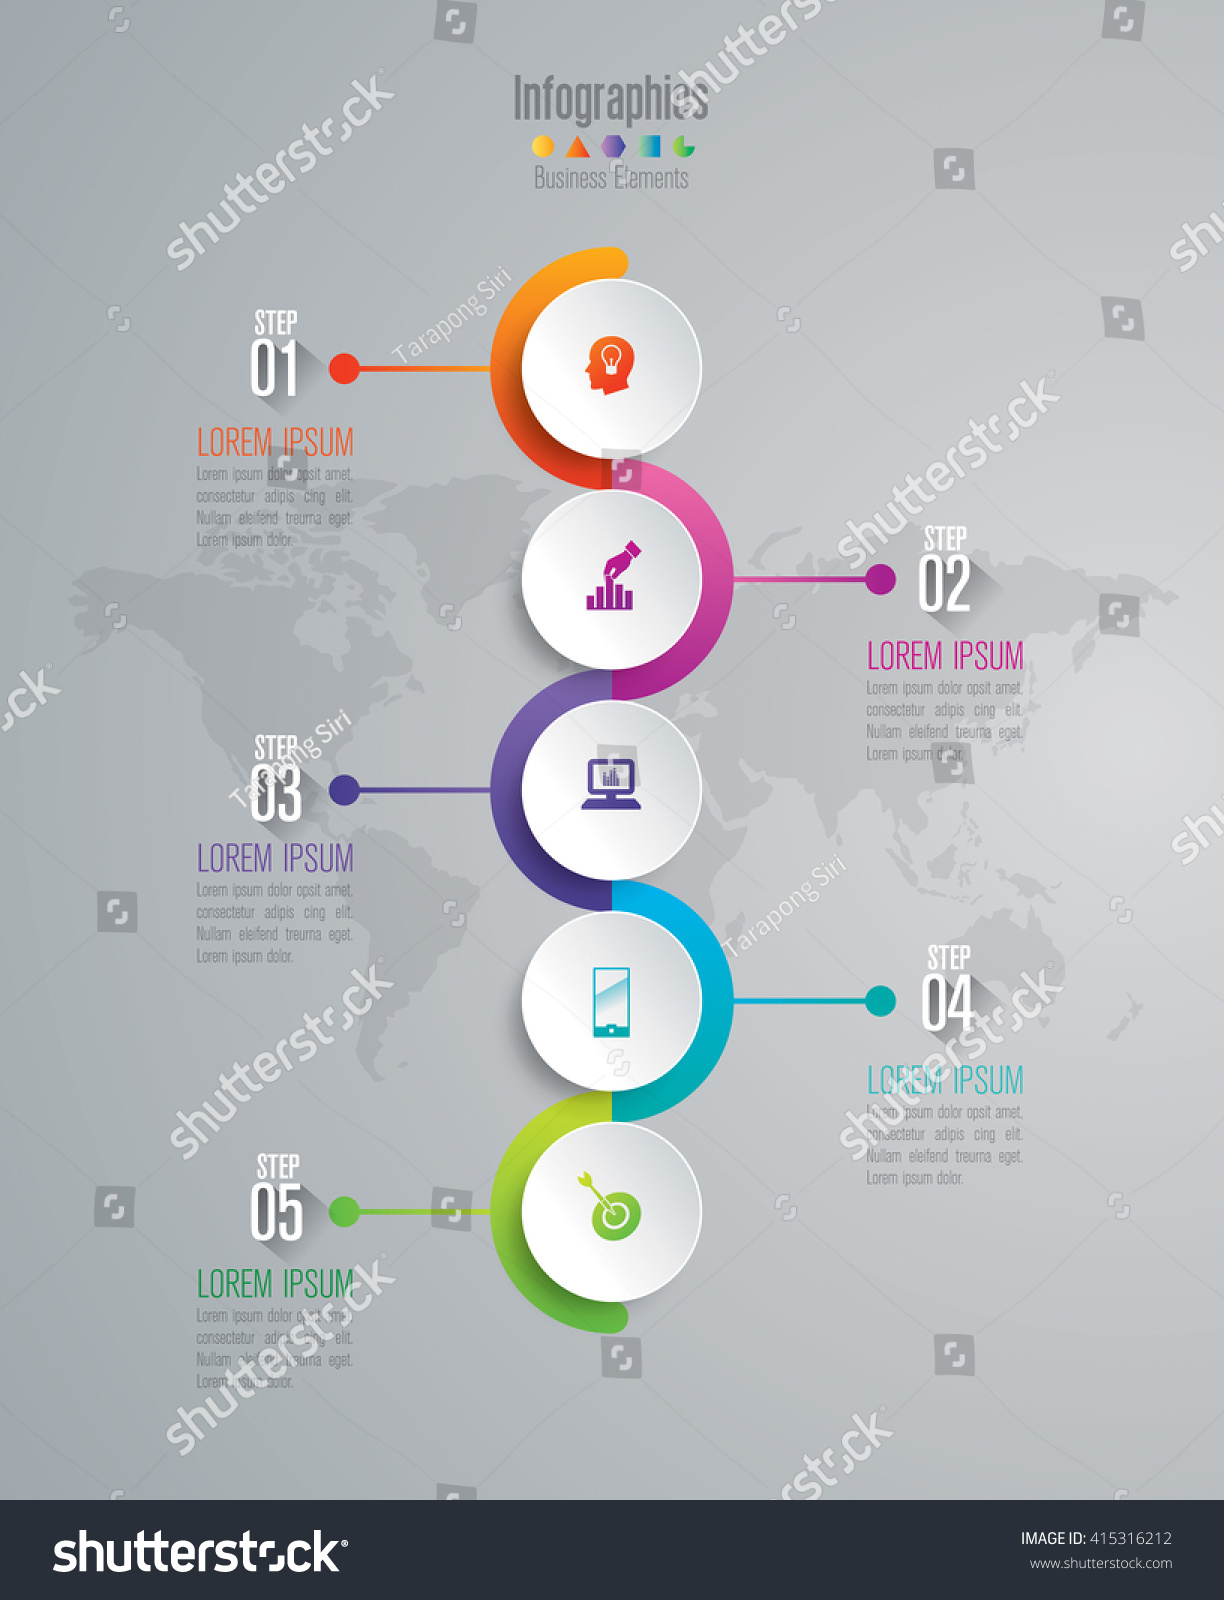 Timeline Infographic Design Vector Marketing Icons Stock